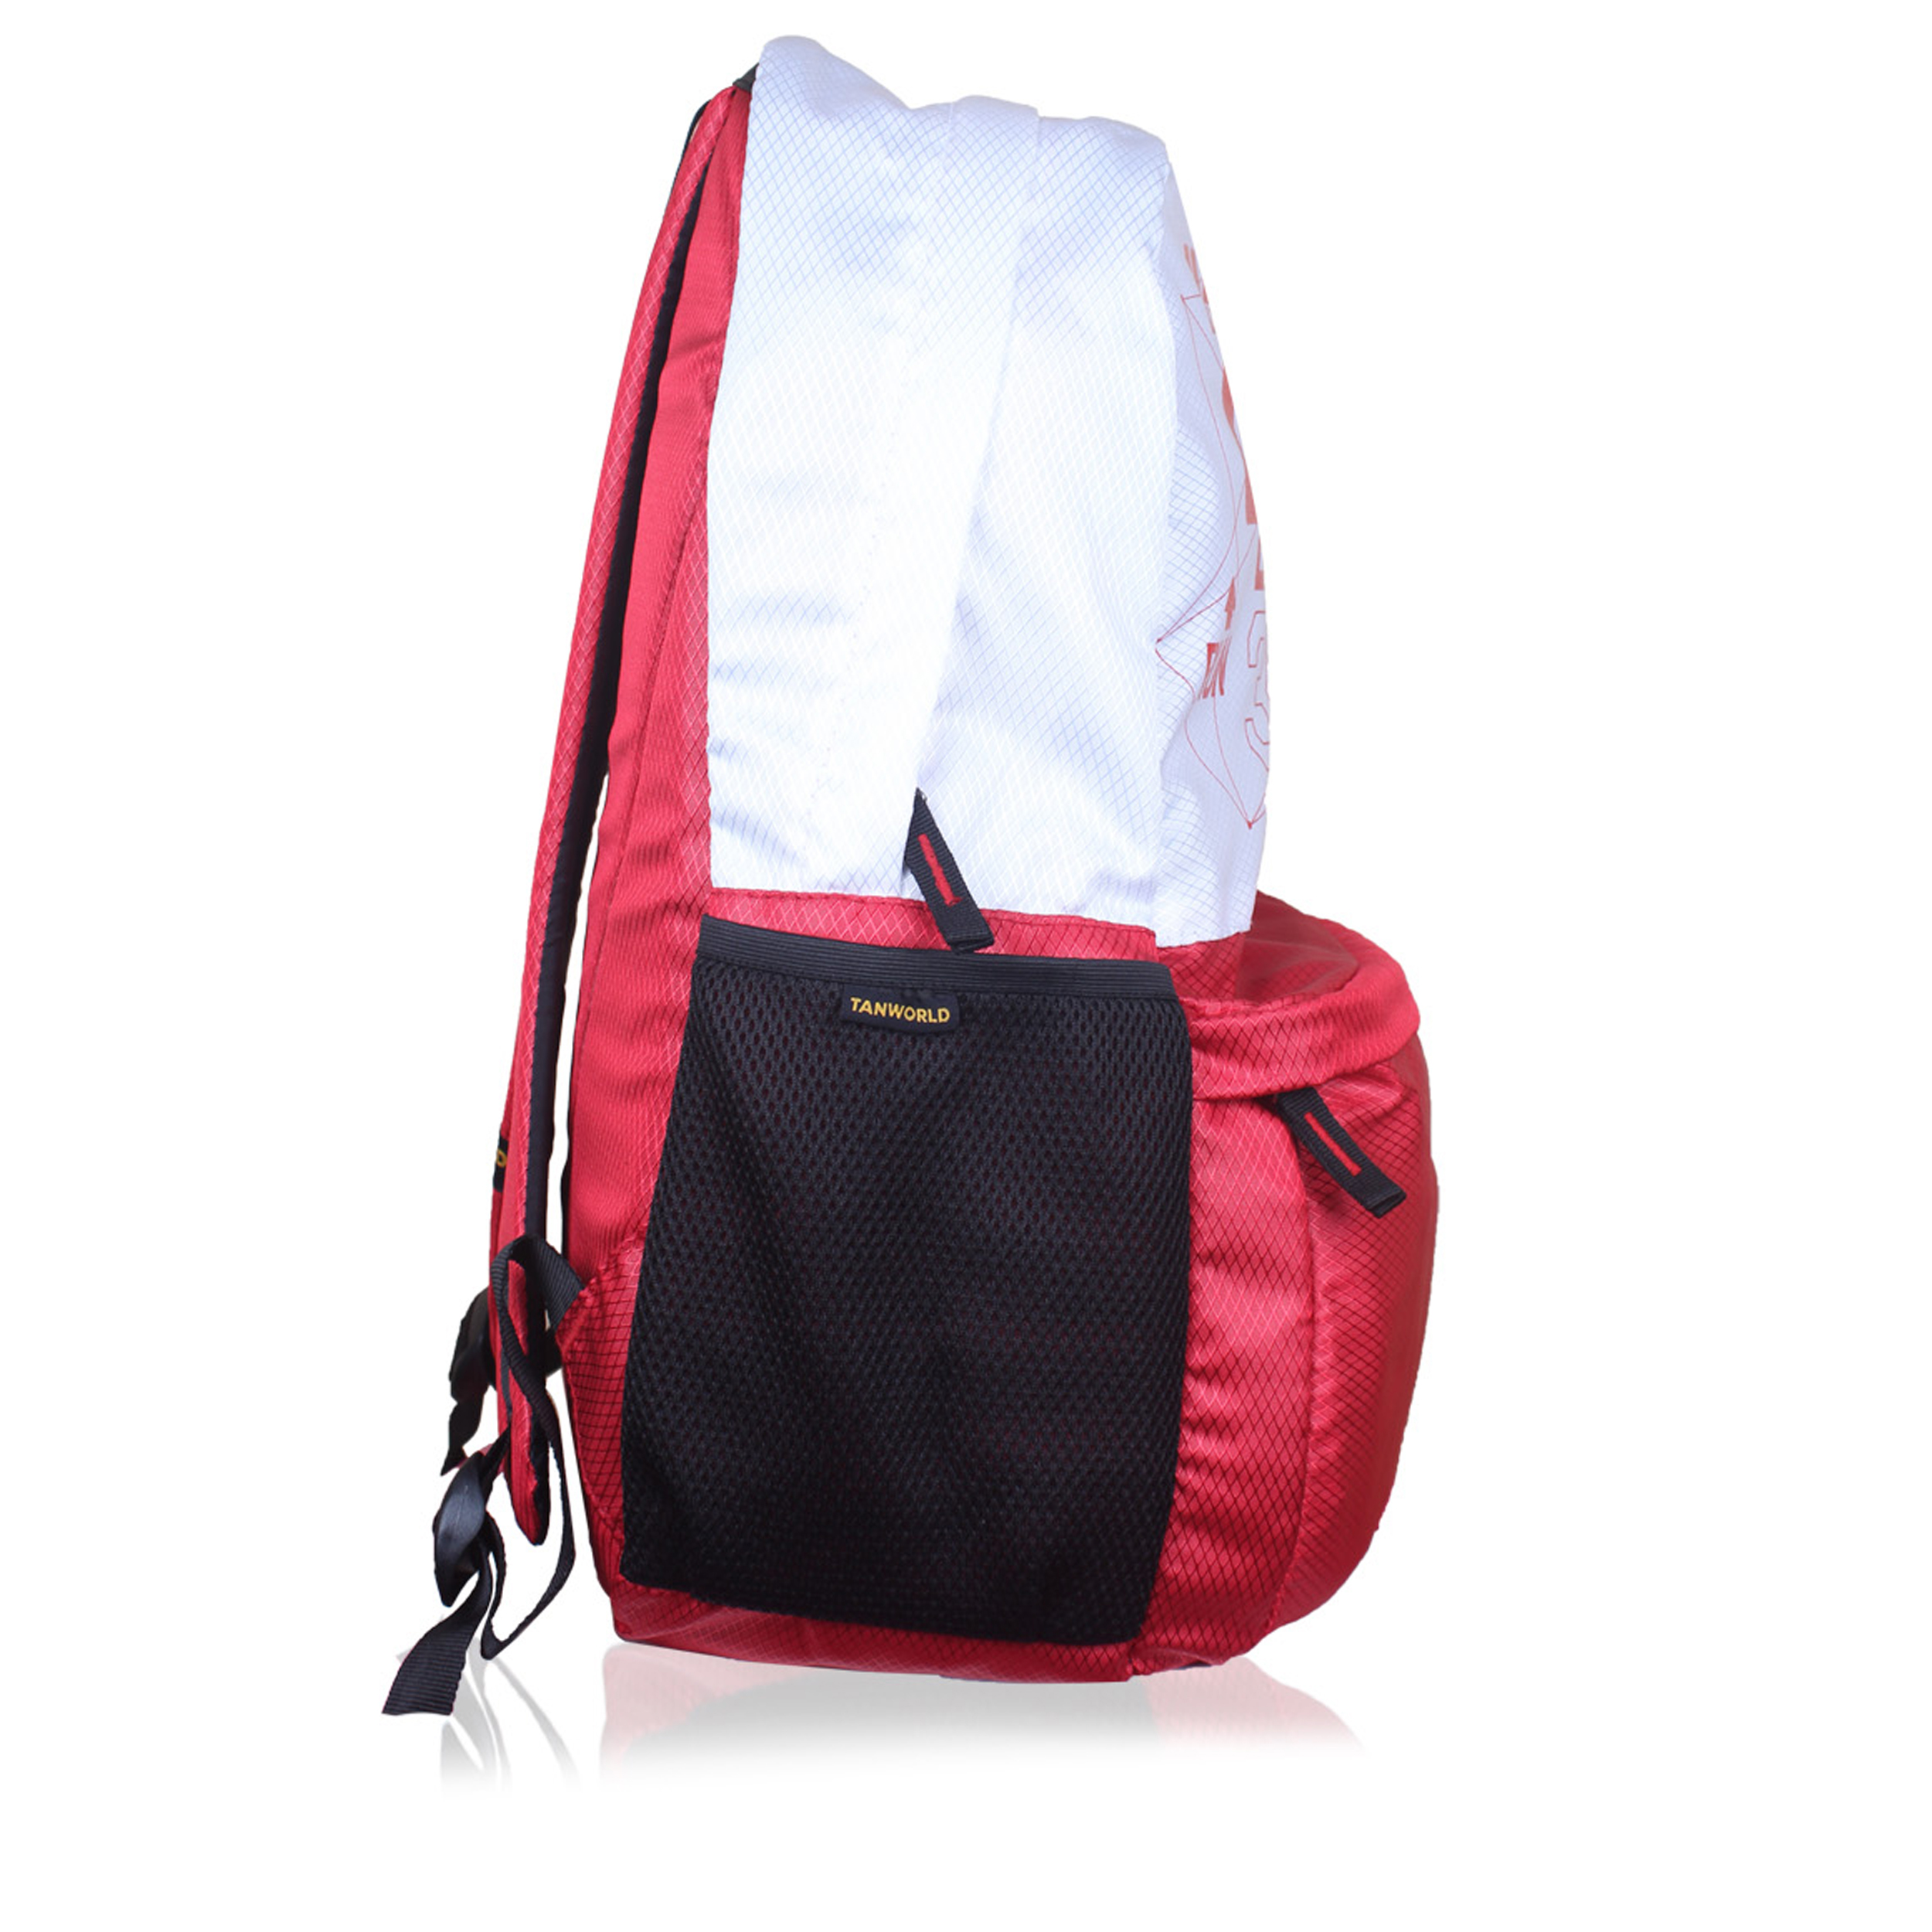 14e11d9a75a6 Genx Classic Red-White Casual Backpack – TANWORLD